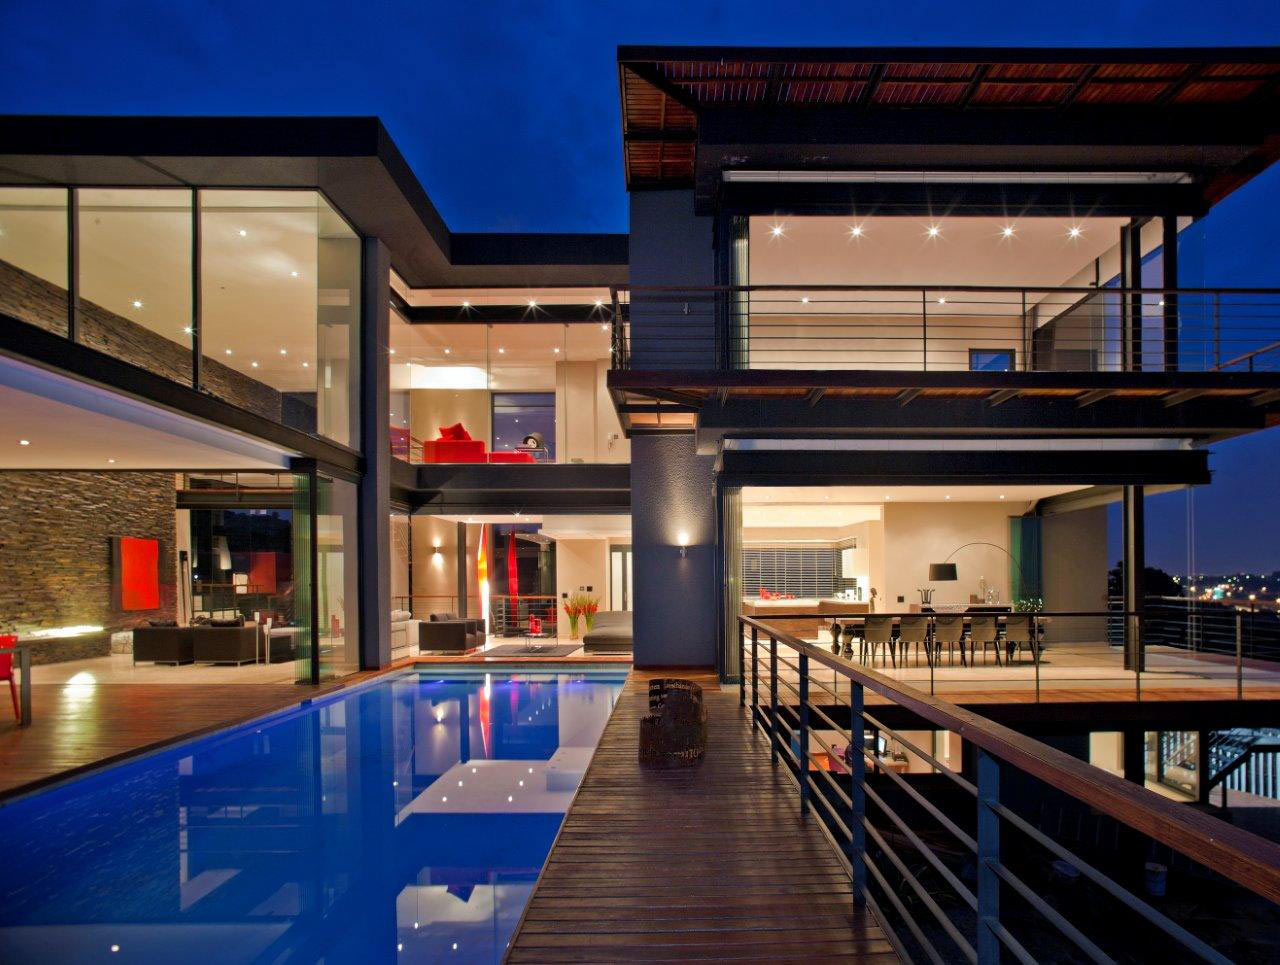 A House Renovated to Focus on the View